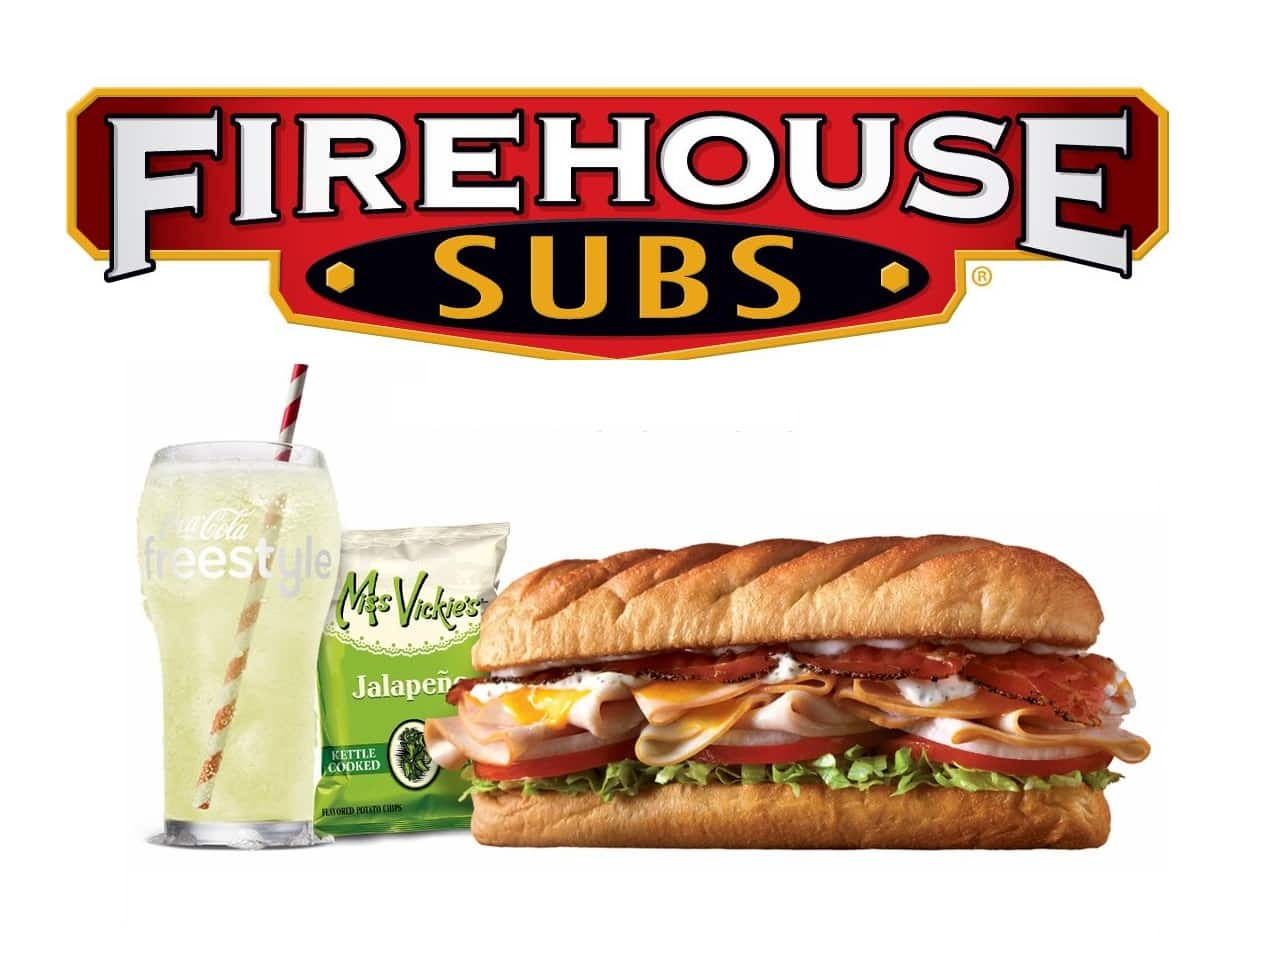 graphic relating to Printable Menu Firehouse Subs called Firehouse Subs: Absolutely free Medium Sub w/ Get of Medium or